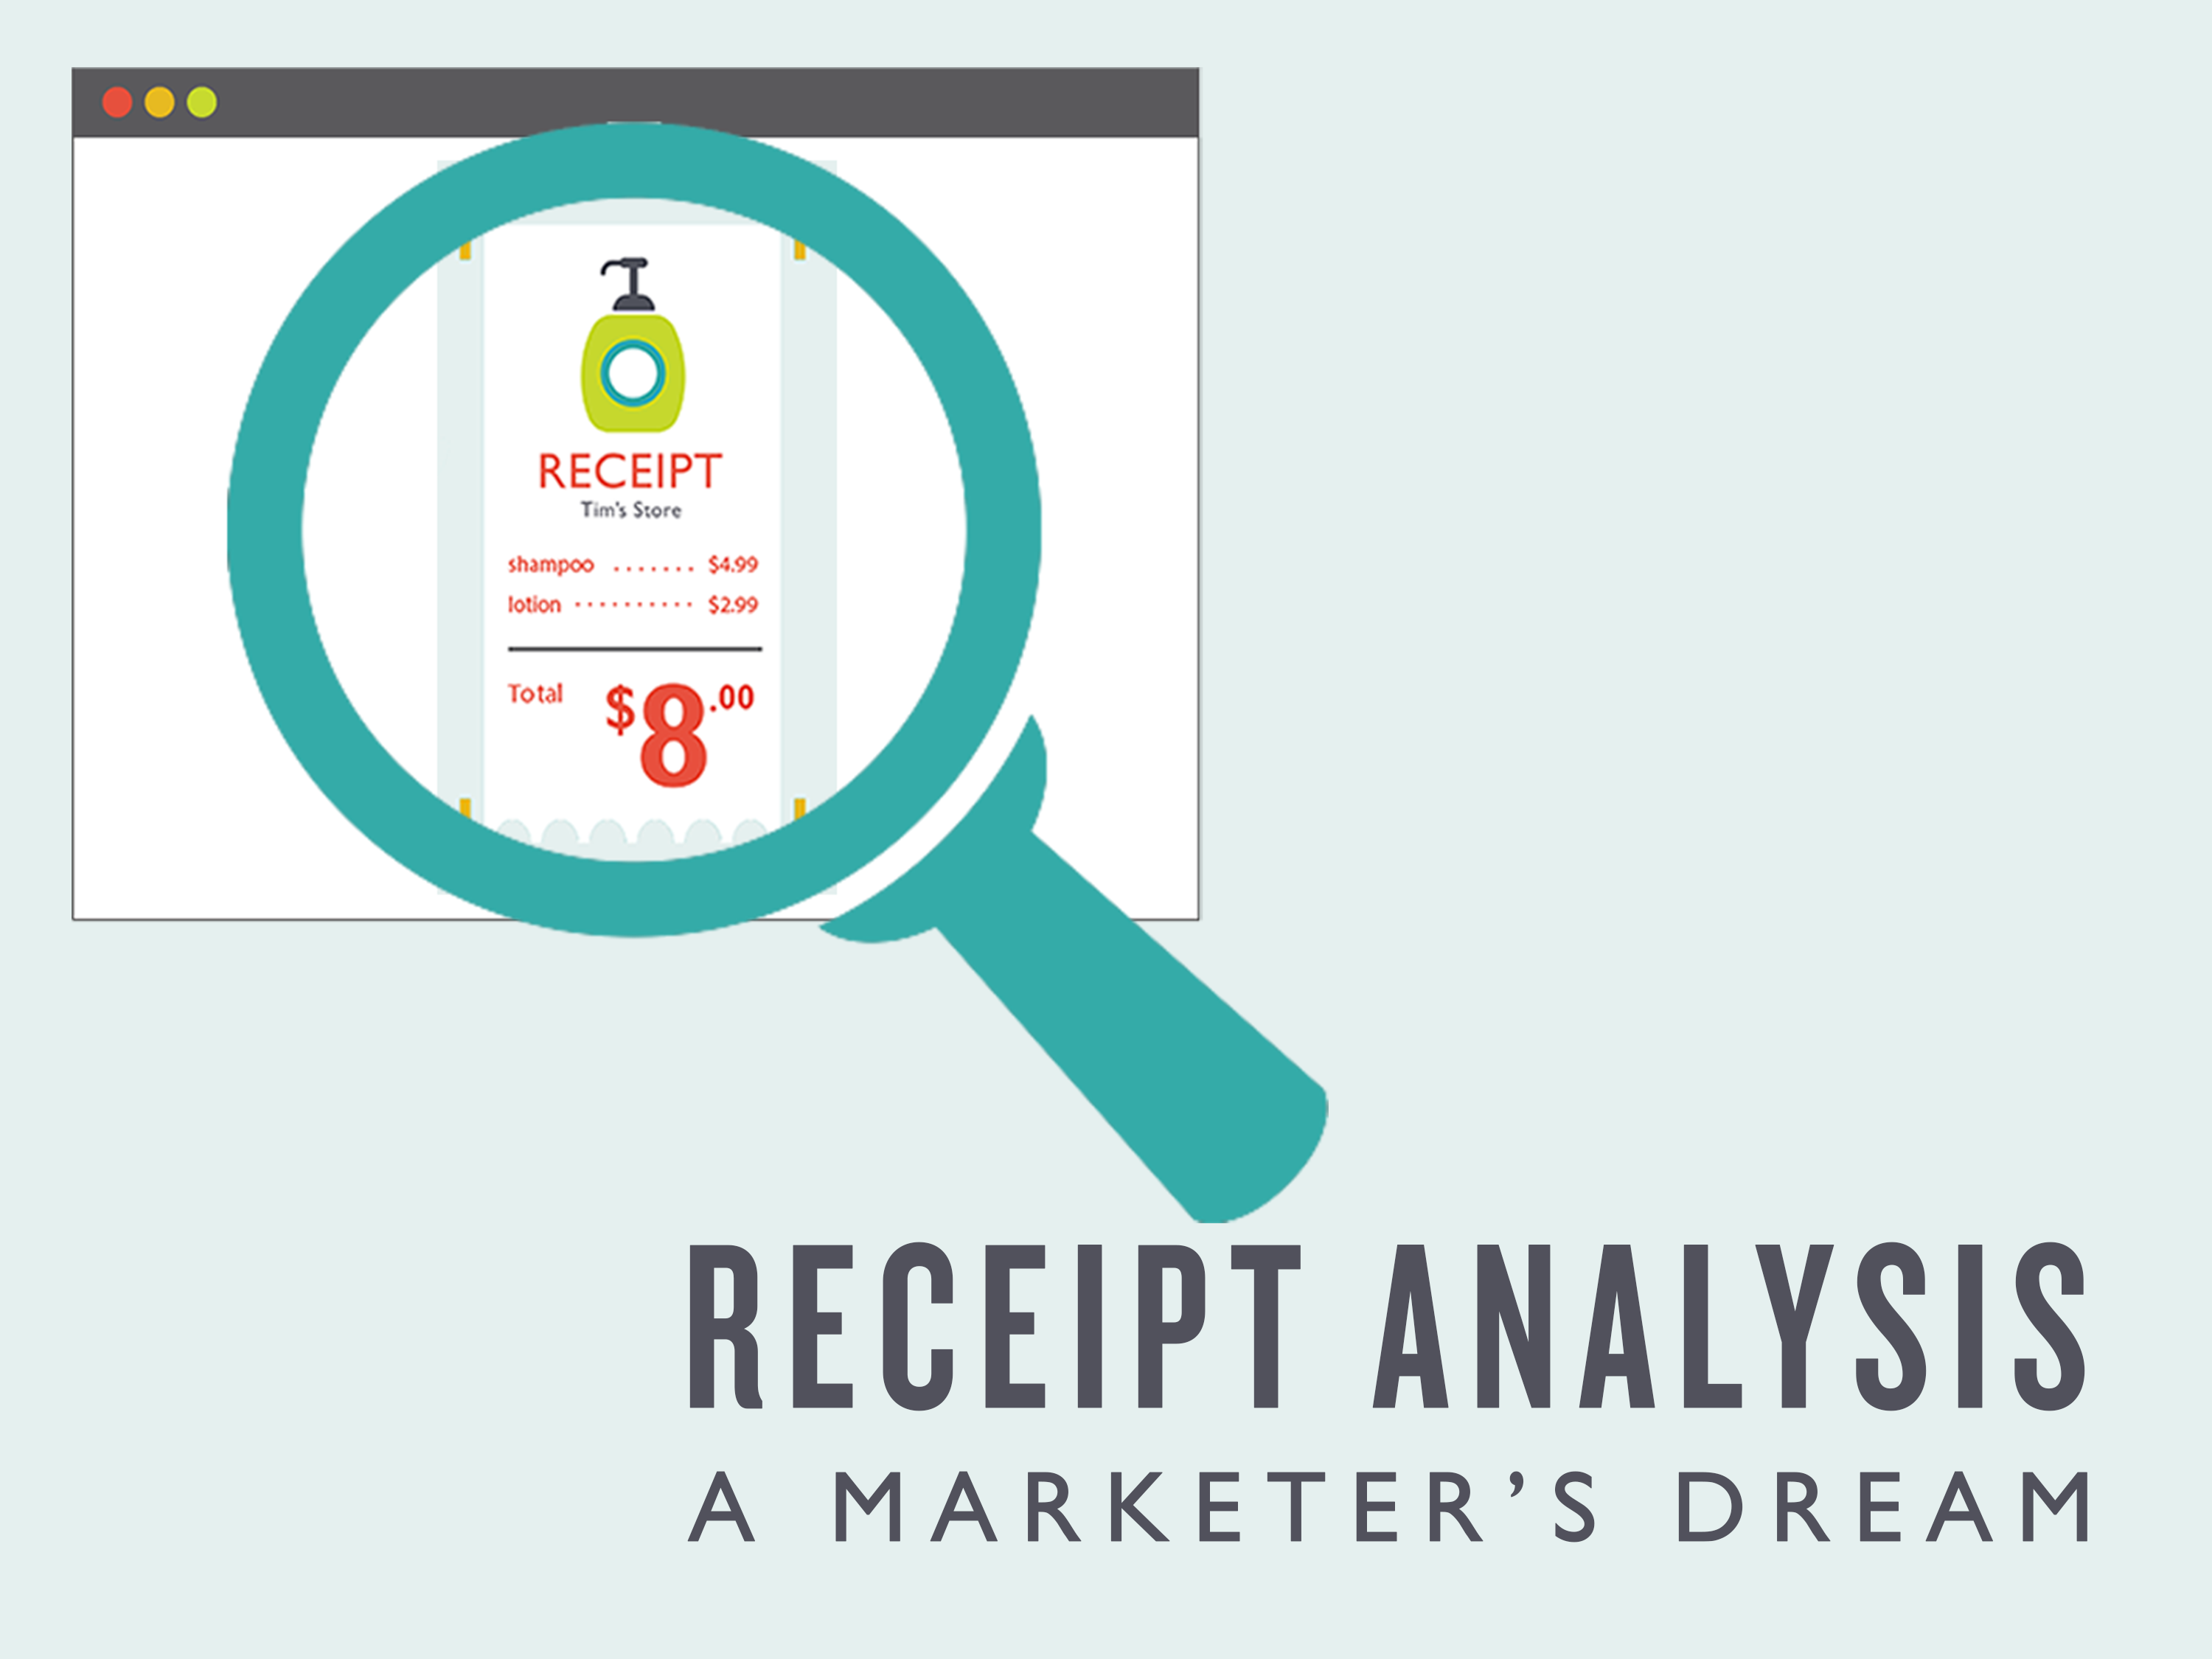 Receipt Analysis Infographic - Cover